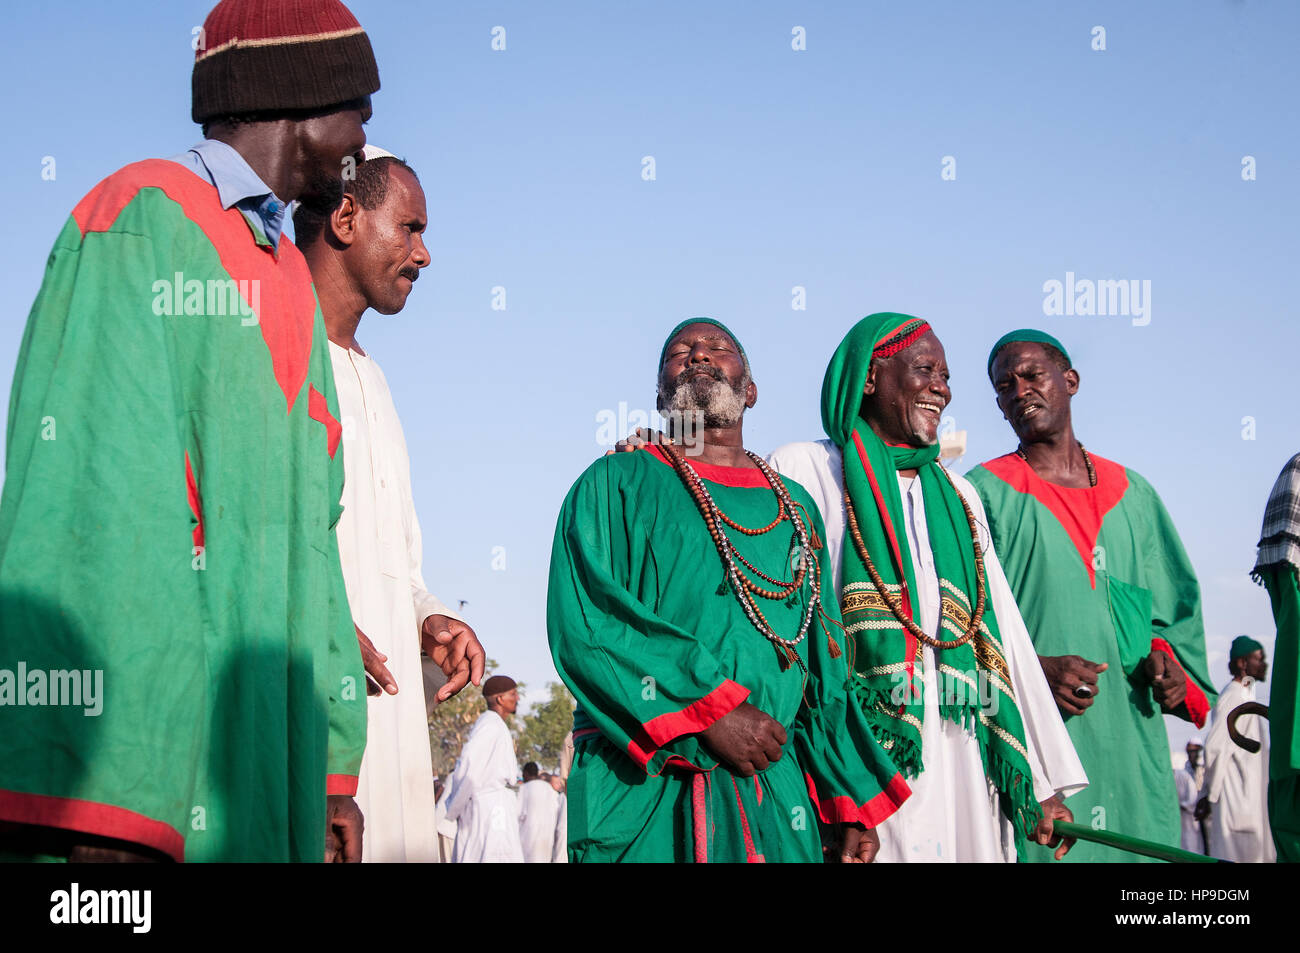 SUDAN, OMDURMAN: Every Friday the sufis of Omdurman, the other half of Northern Sudan's capital Khartoum, gather - Stock Image